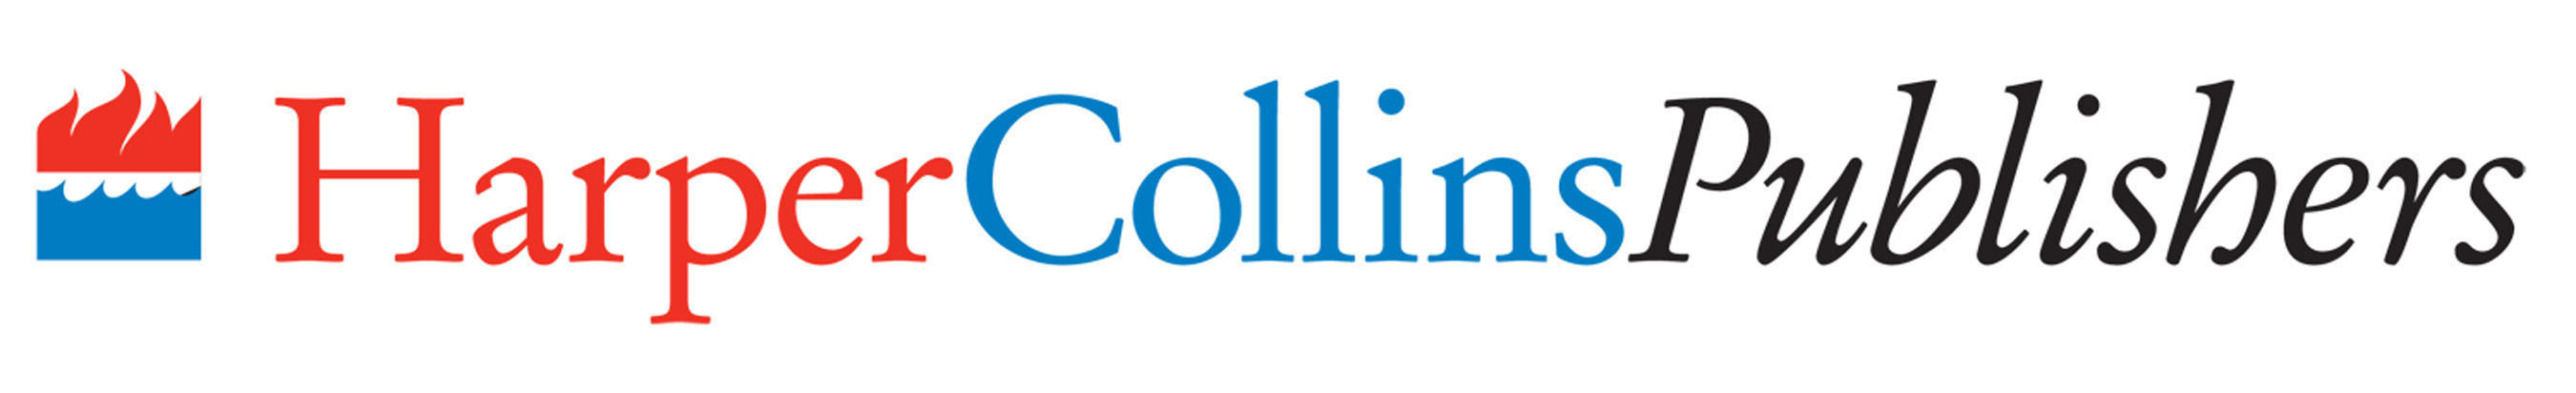 HarperCollins Publishers Announces Two-Book Deal With ...